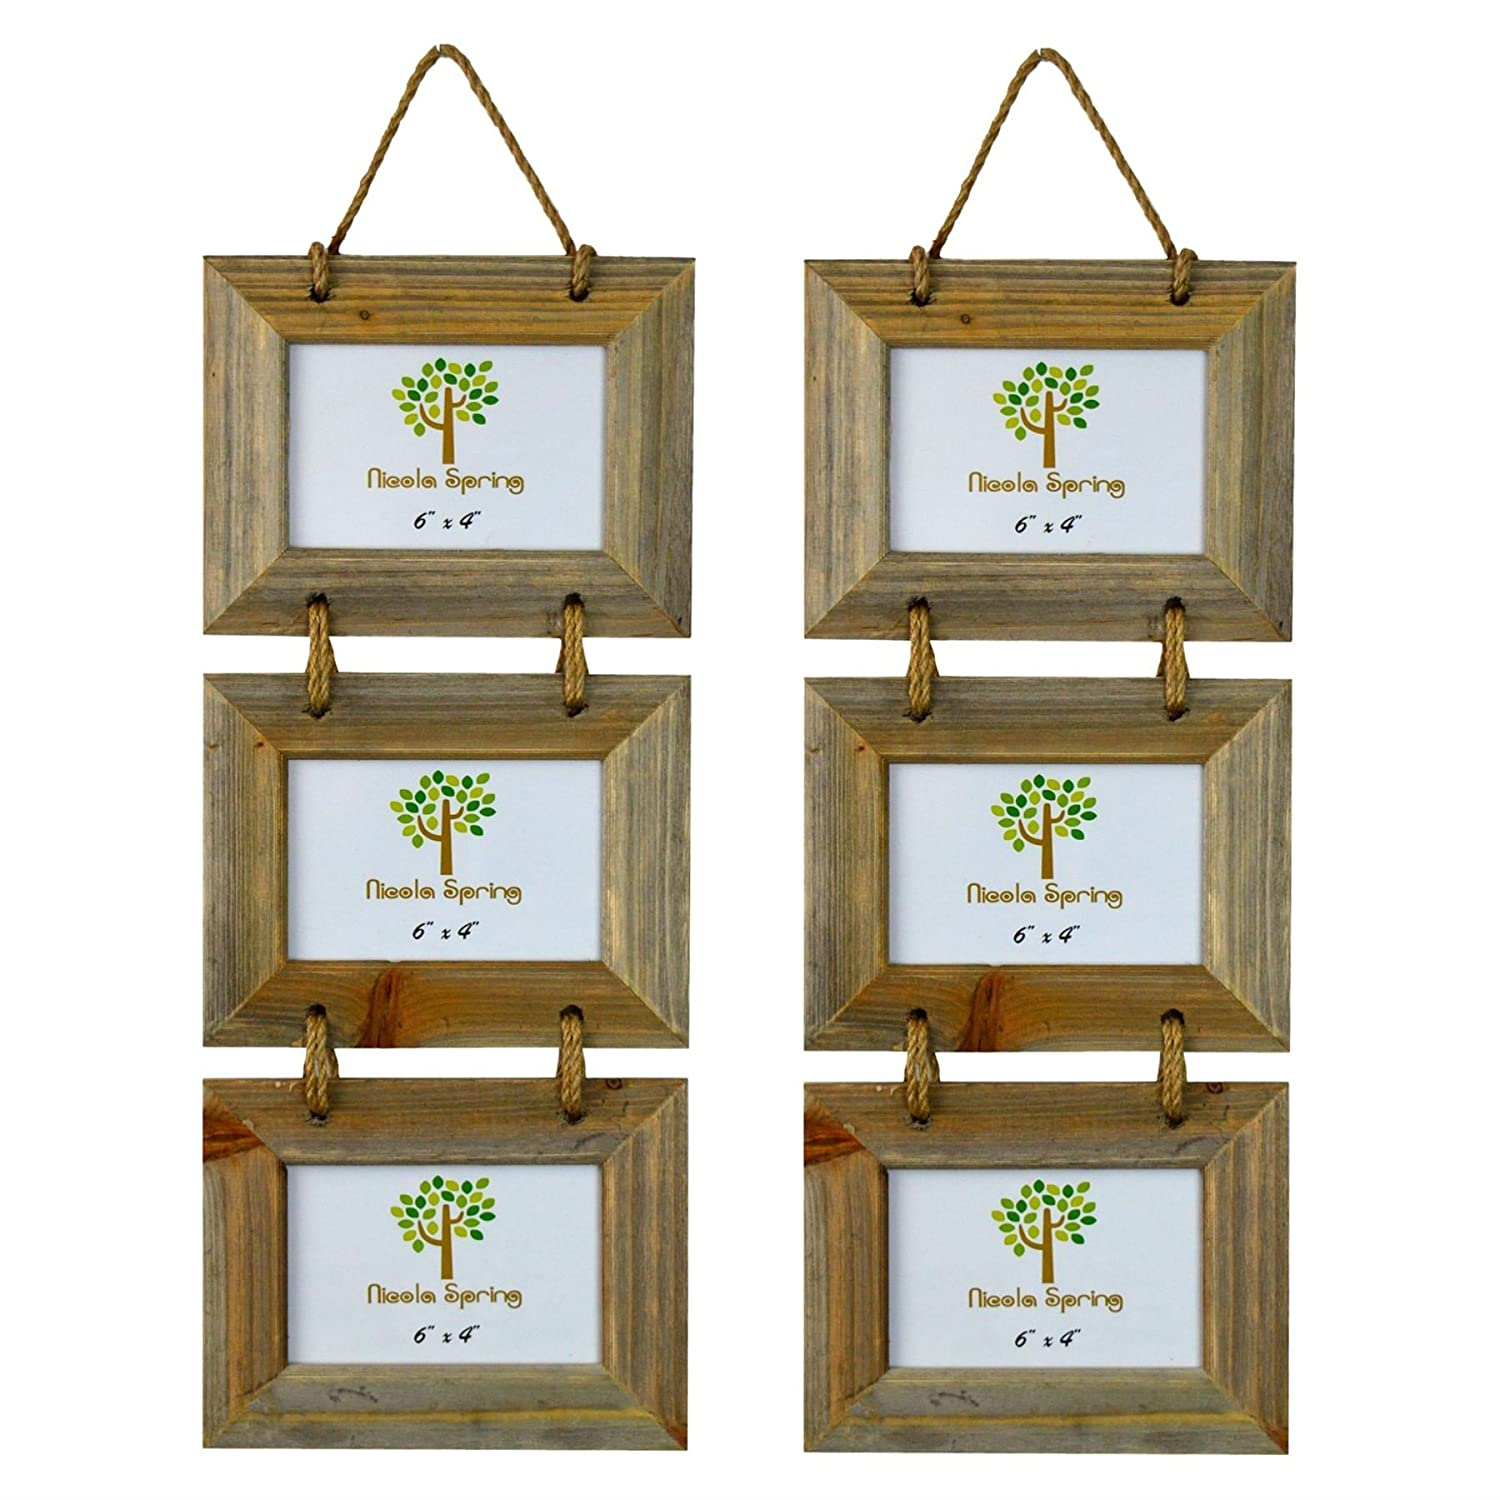 Nicola Spring Triple Wooden 3 Photo Hanging Picture Frame - 6 x 4 - Pack Of 2